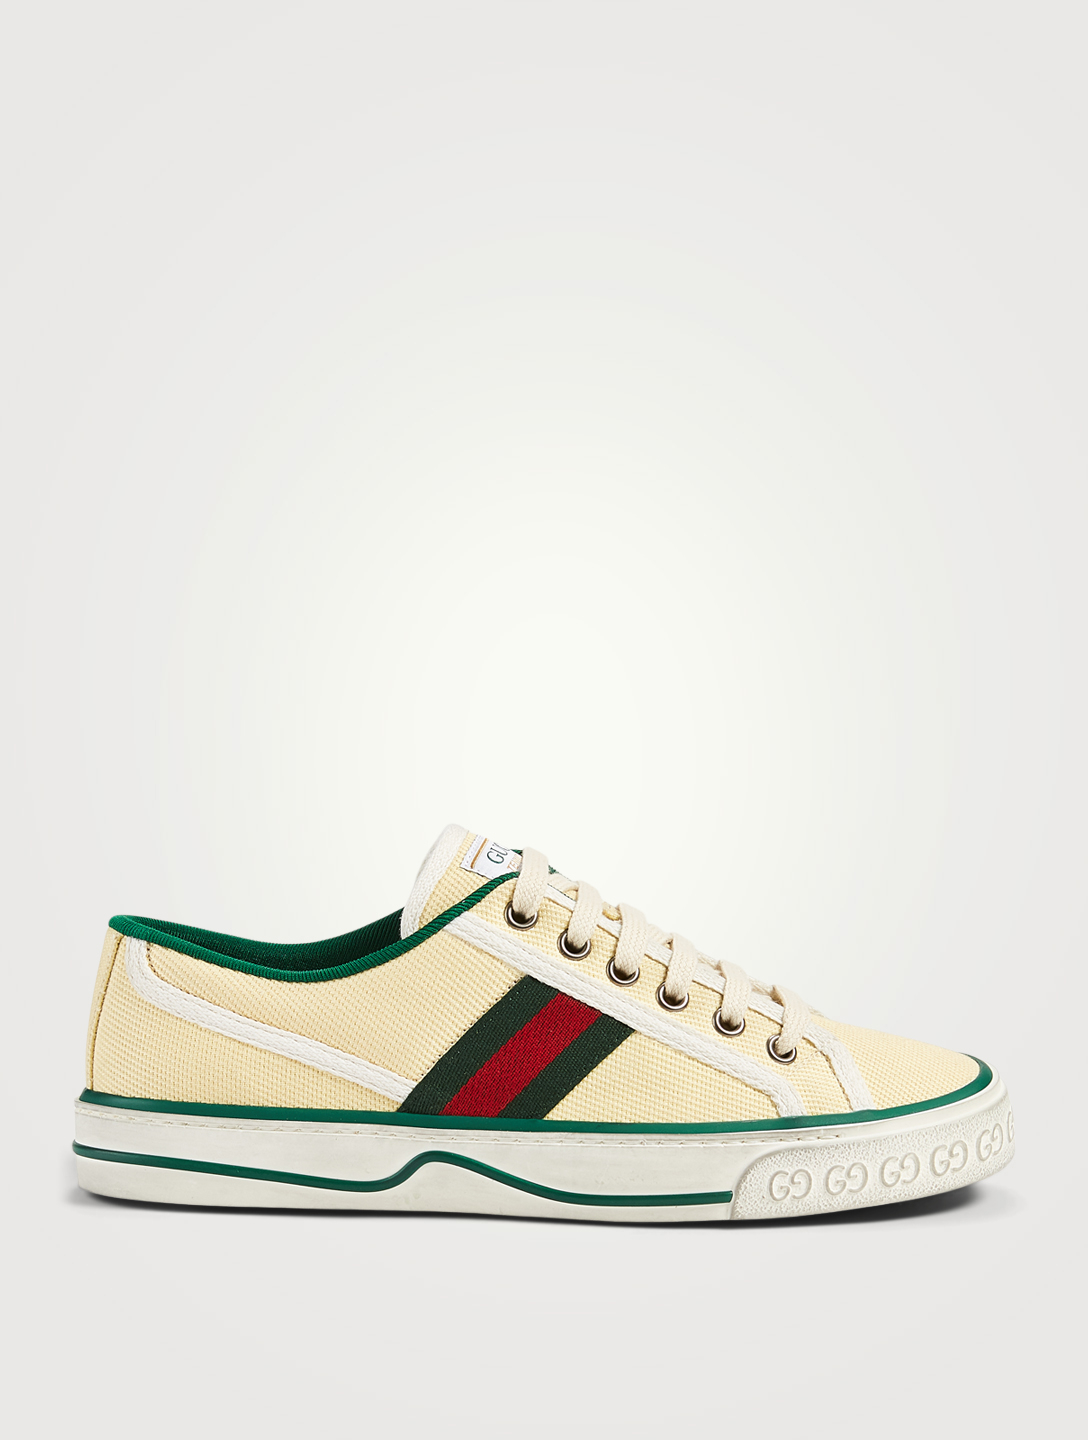 GUCCI Tennis 1977 Cotton Sneakers Women's White